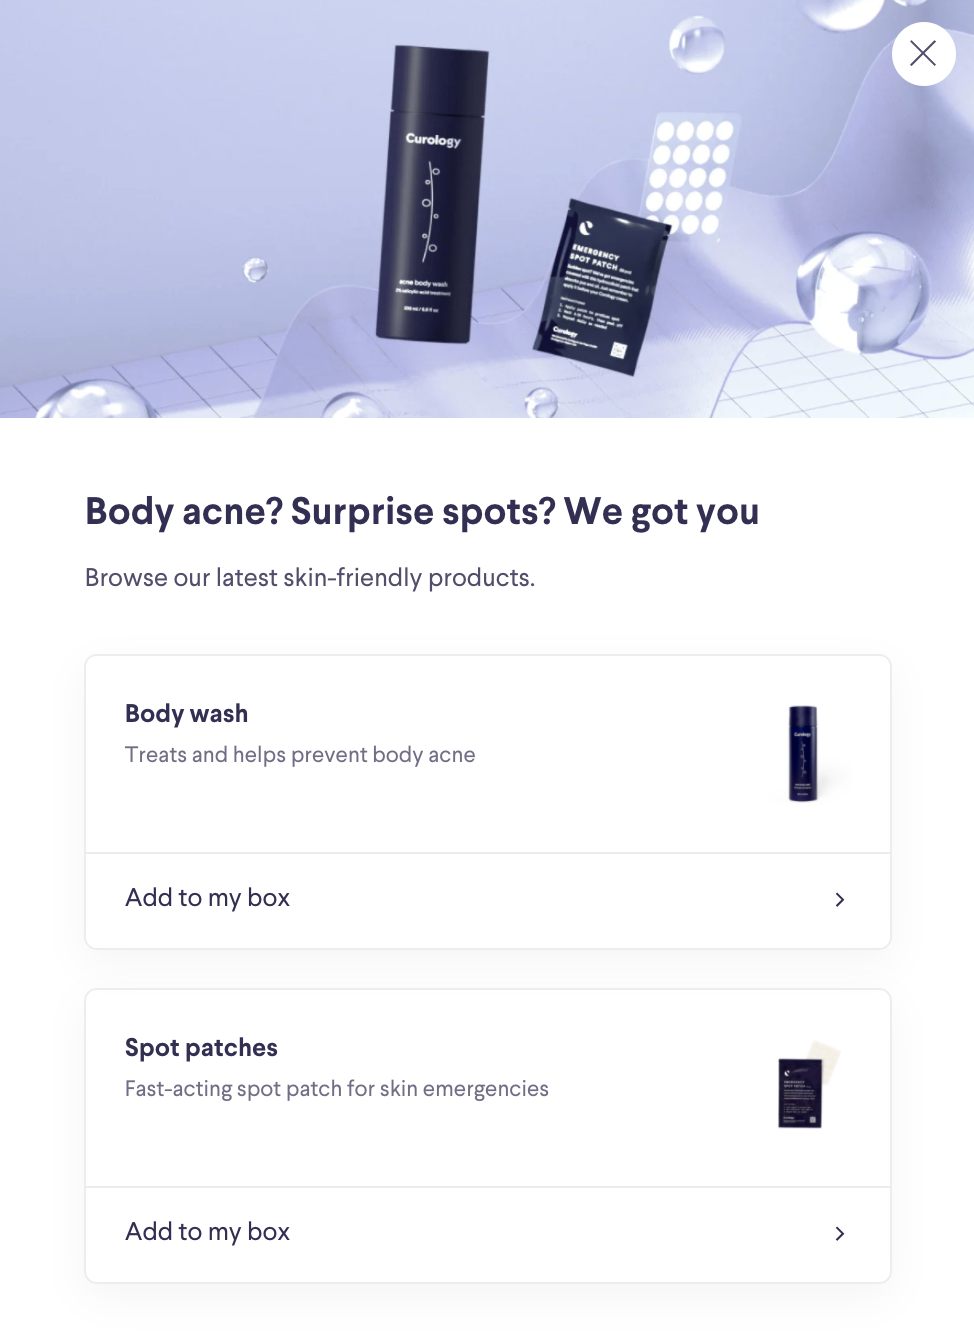 Curology's new acne body wash and spot patches.